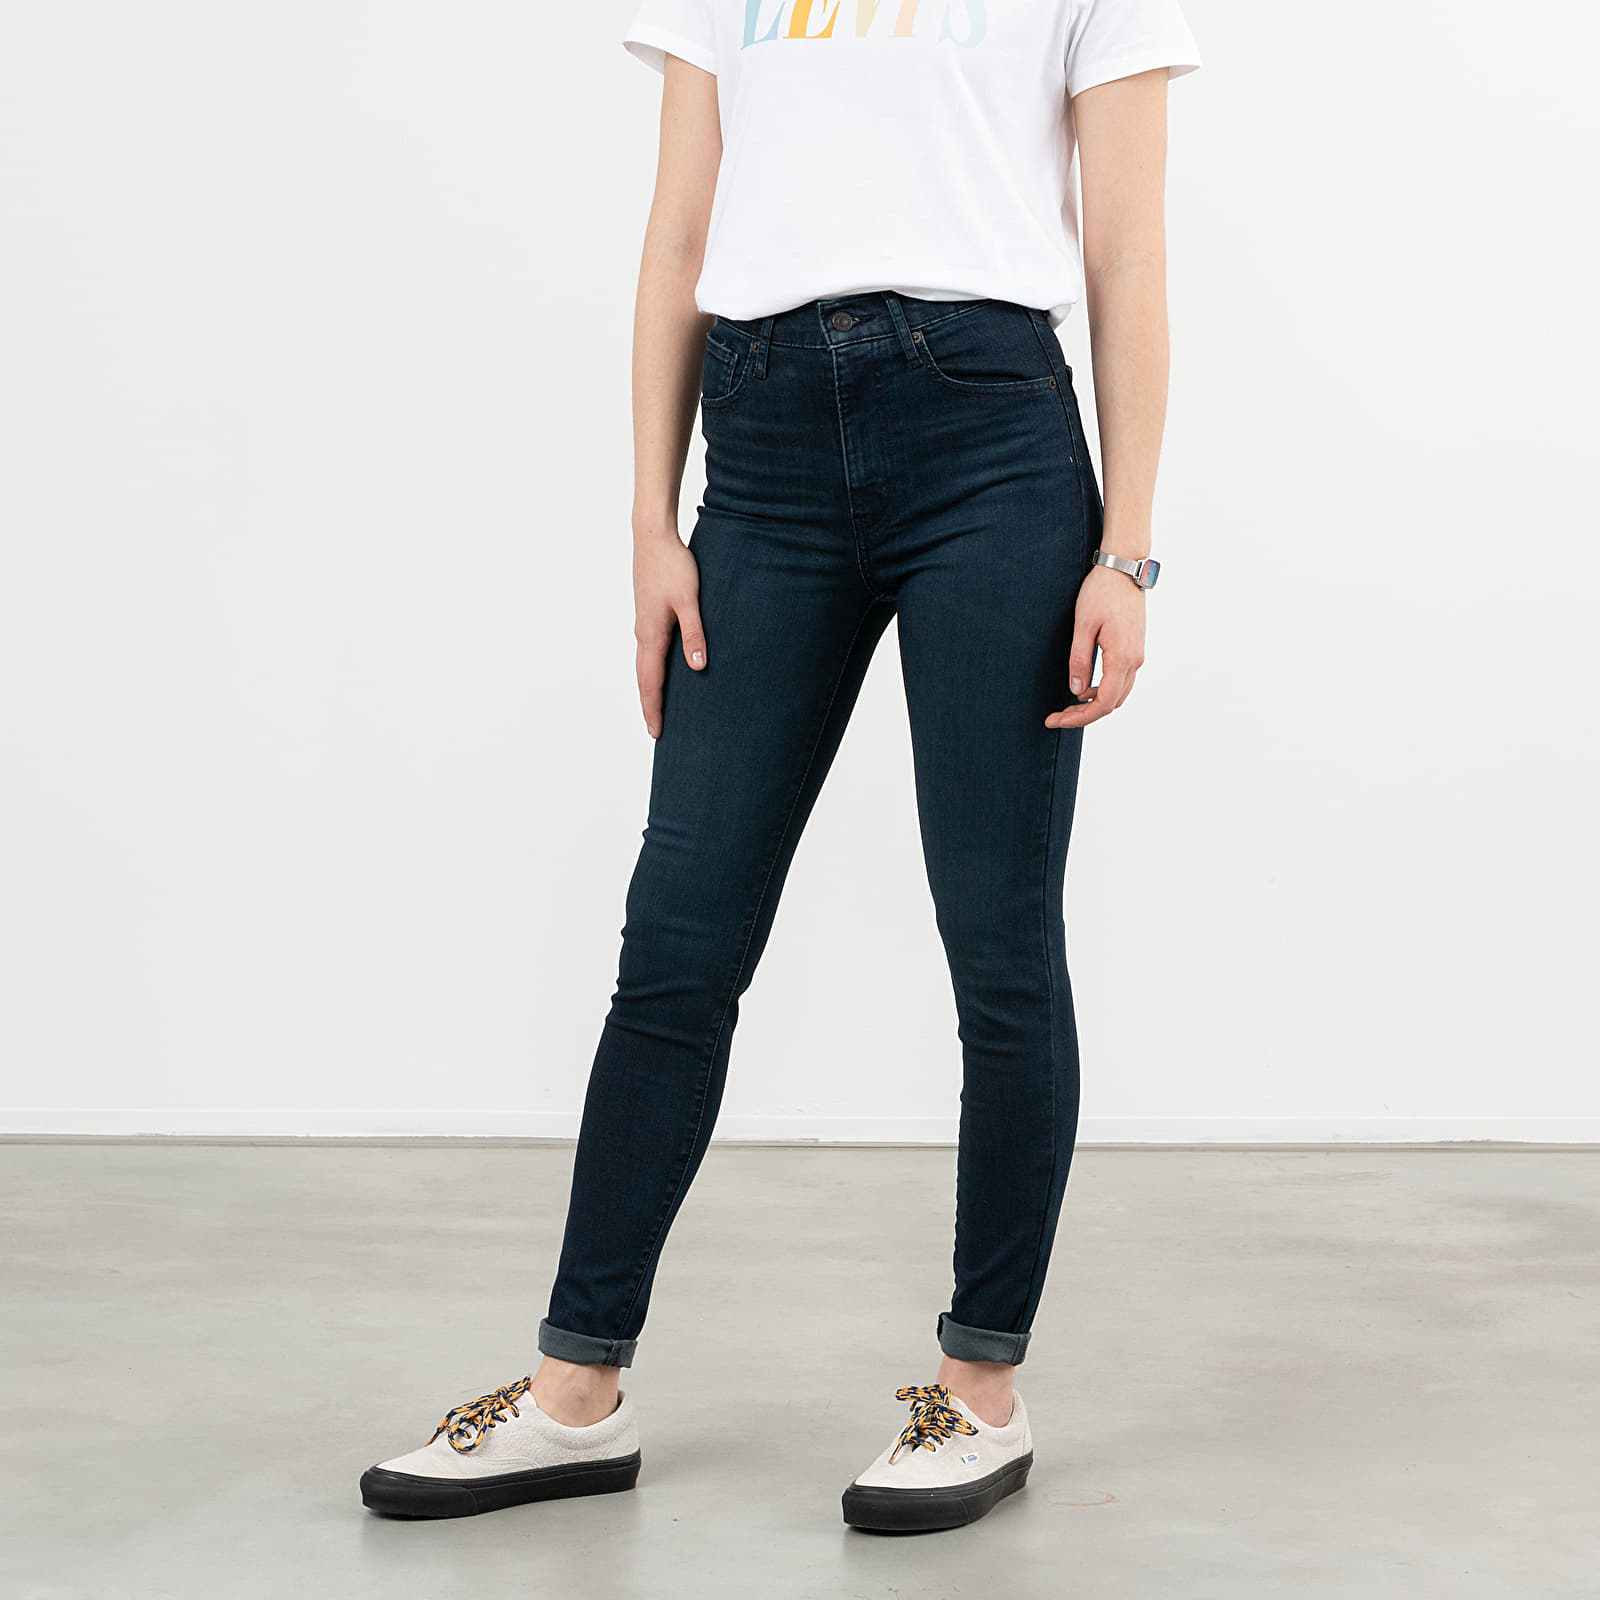 Pants and jeans Levi's Mile High Super Skinny Jeans Dark Blue